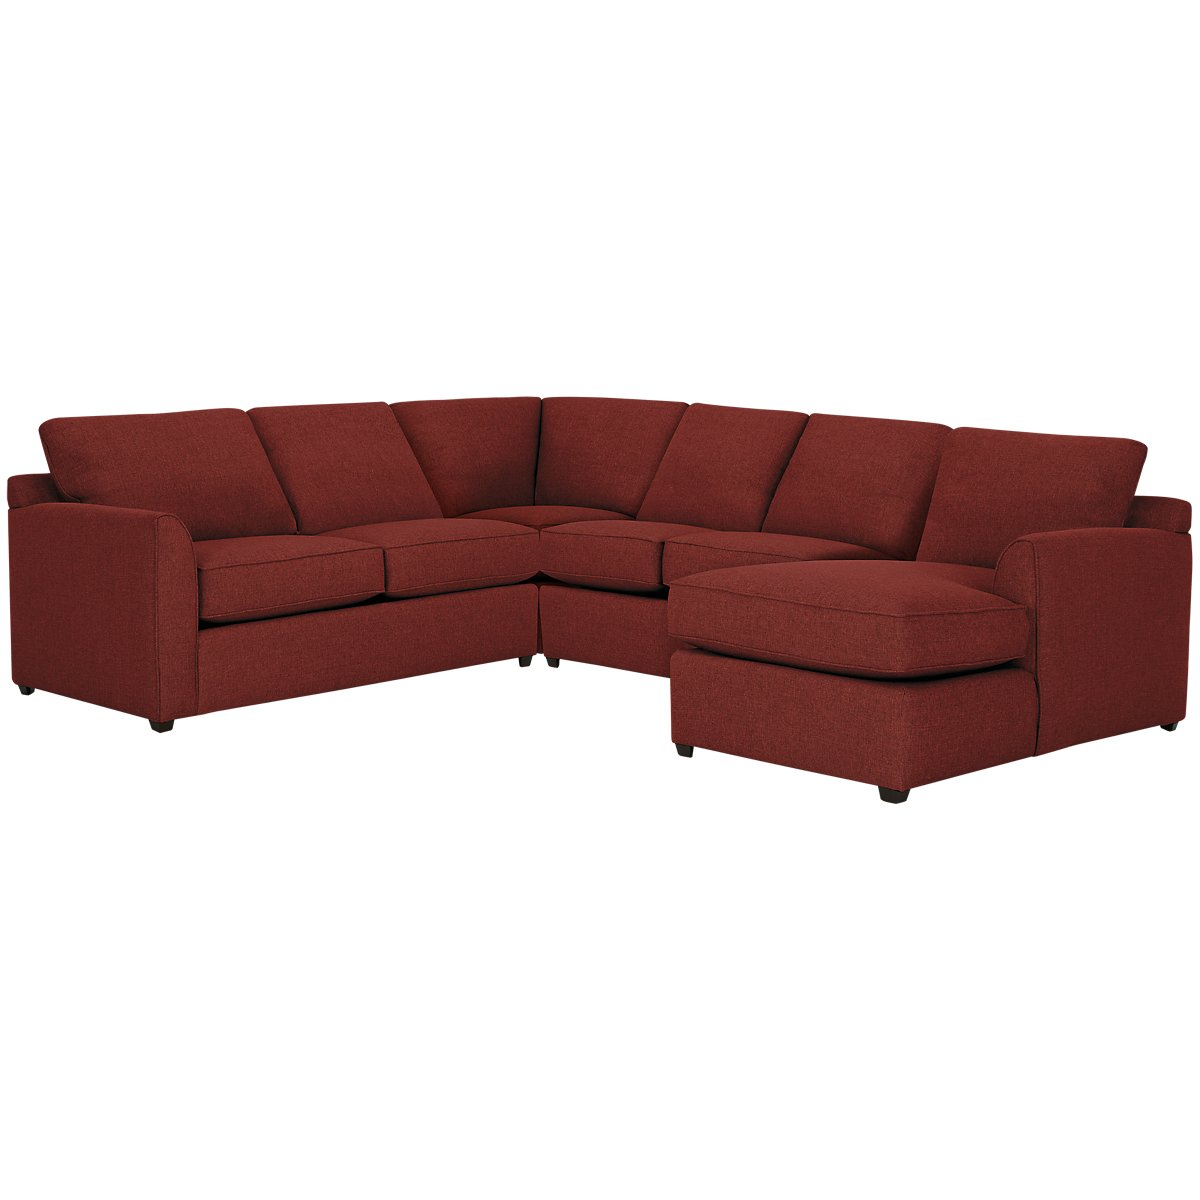 Asheville Red Fabric Medium Right Chaise Sectional